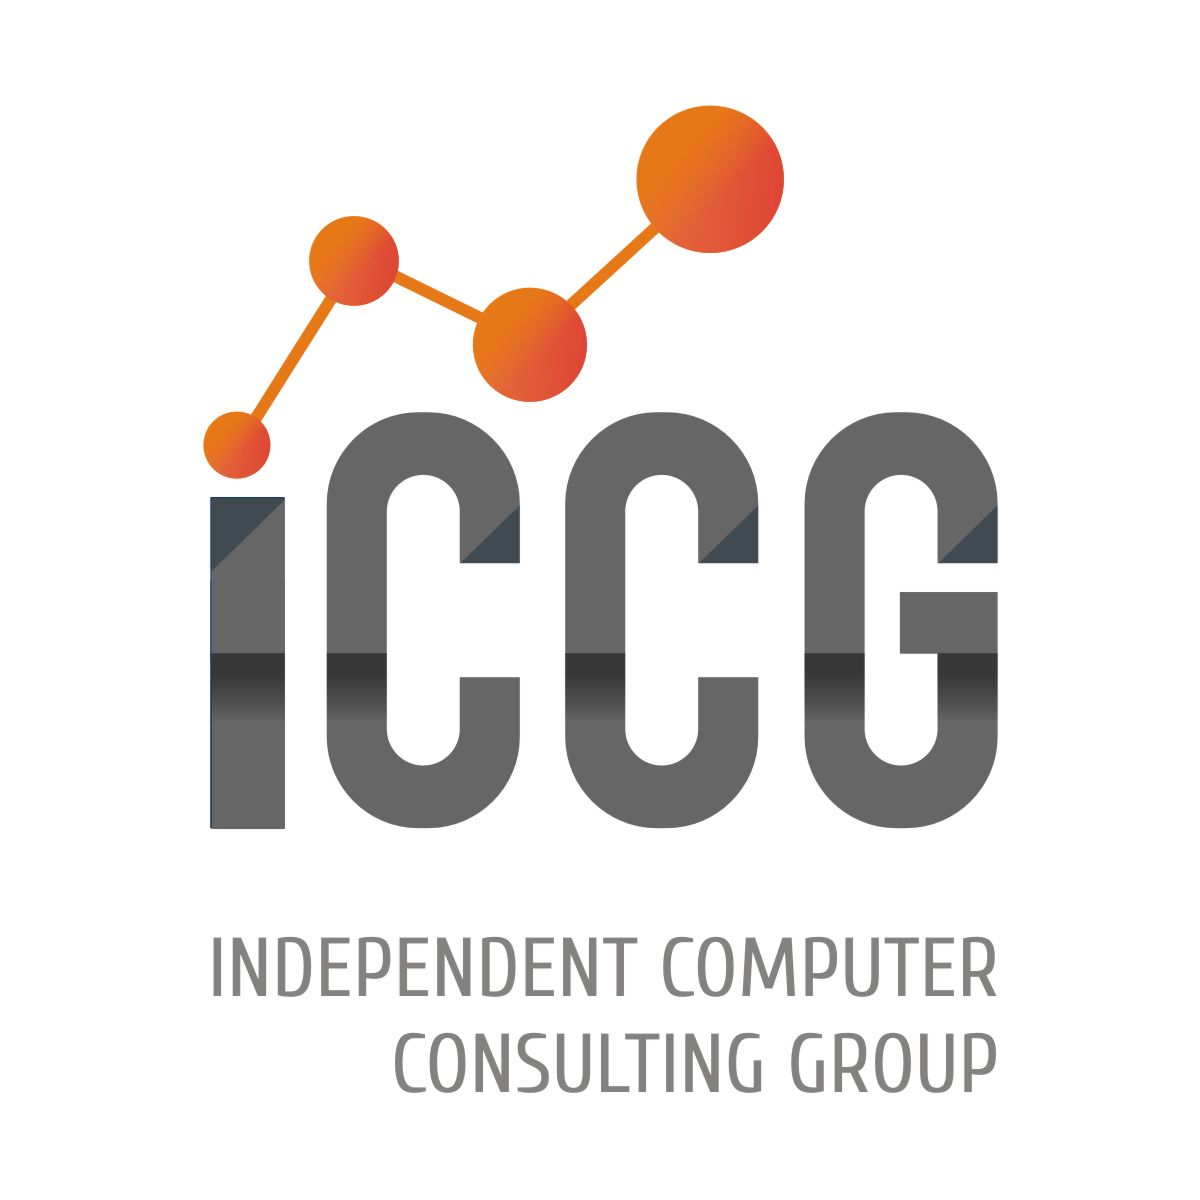 Independent Computer Consulting Group (ICCG) and QBuild Software Form Strategic Partnership